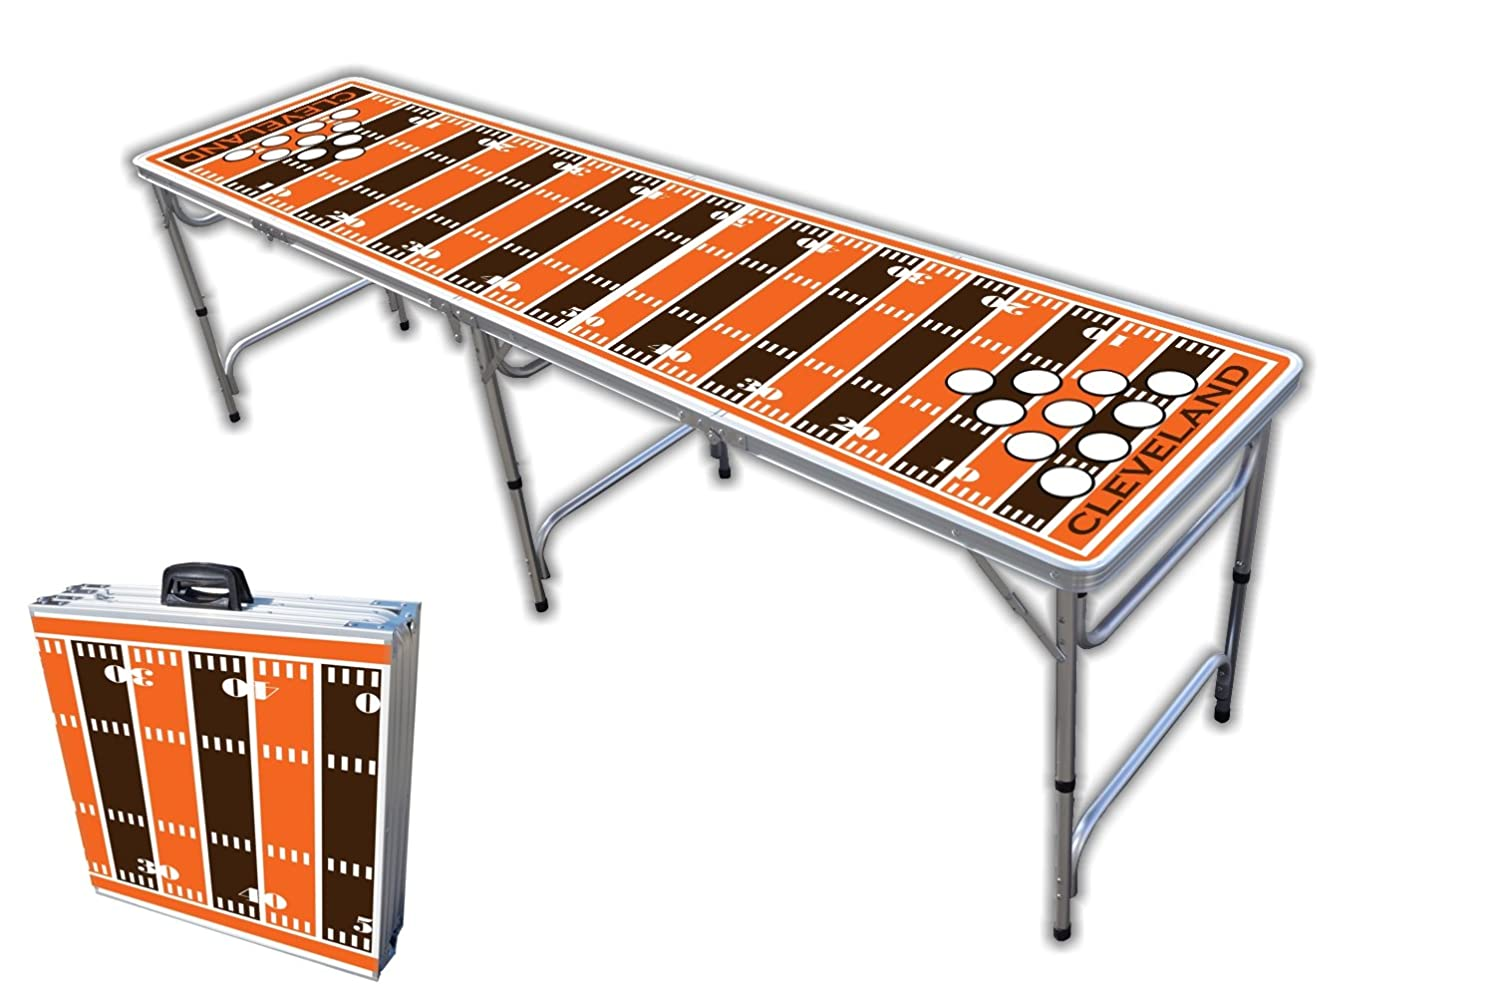 8-Foot Professional Beer Pong Table w/OPTIONAL Cup Holes - Cleveland Football Field Graphic PartyPongTables.com